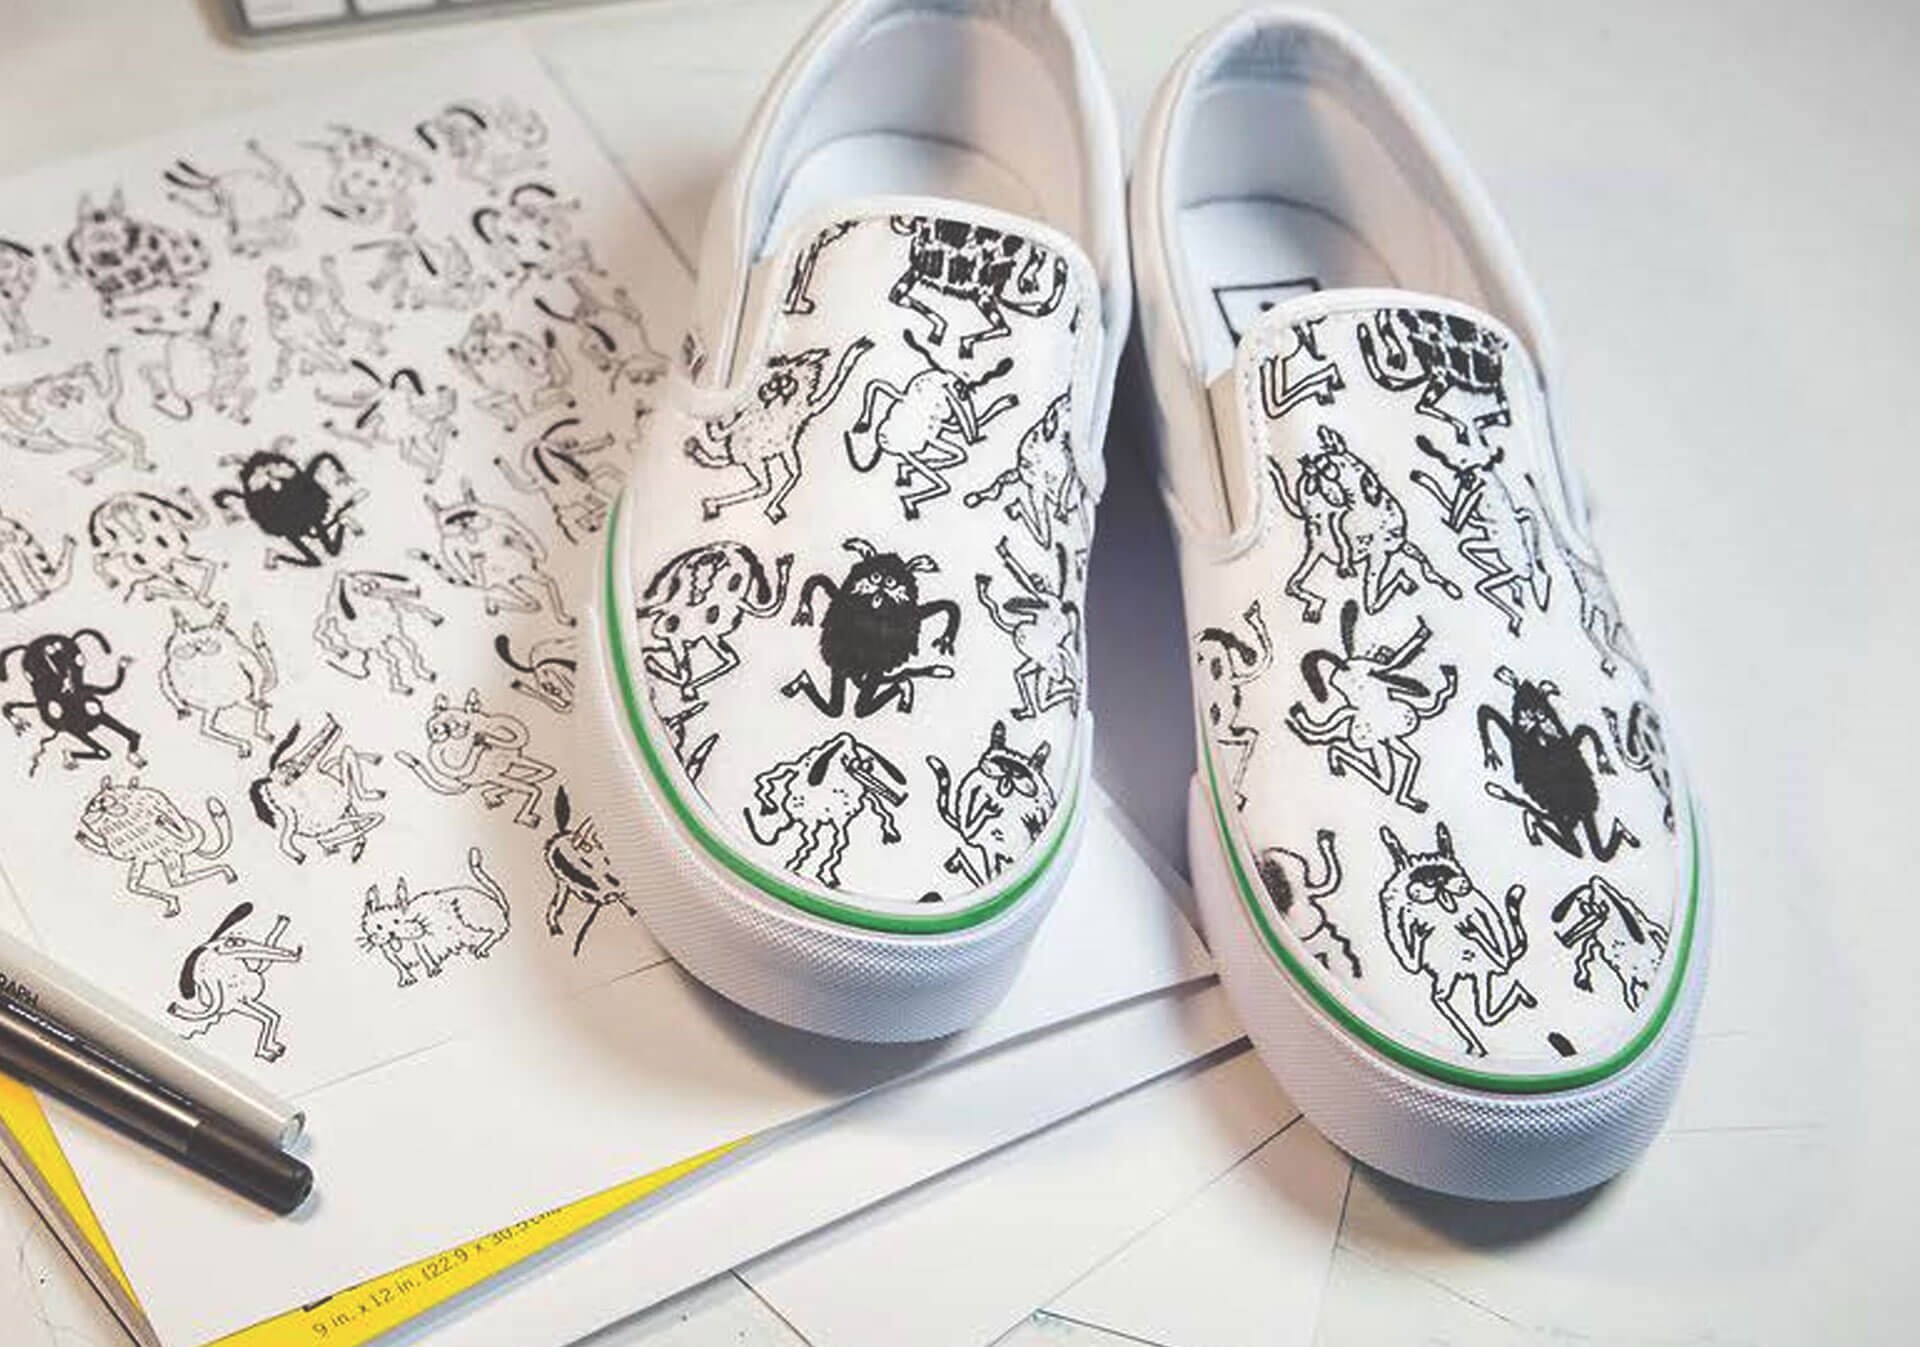 Create your own custom pair of Vans with the help of local artists in Calgary